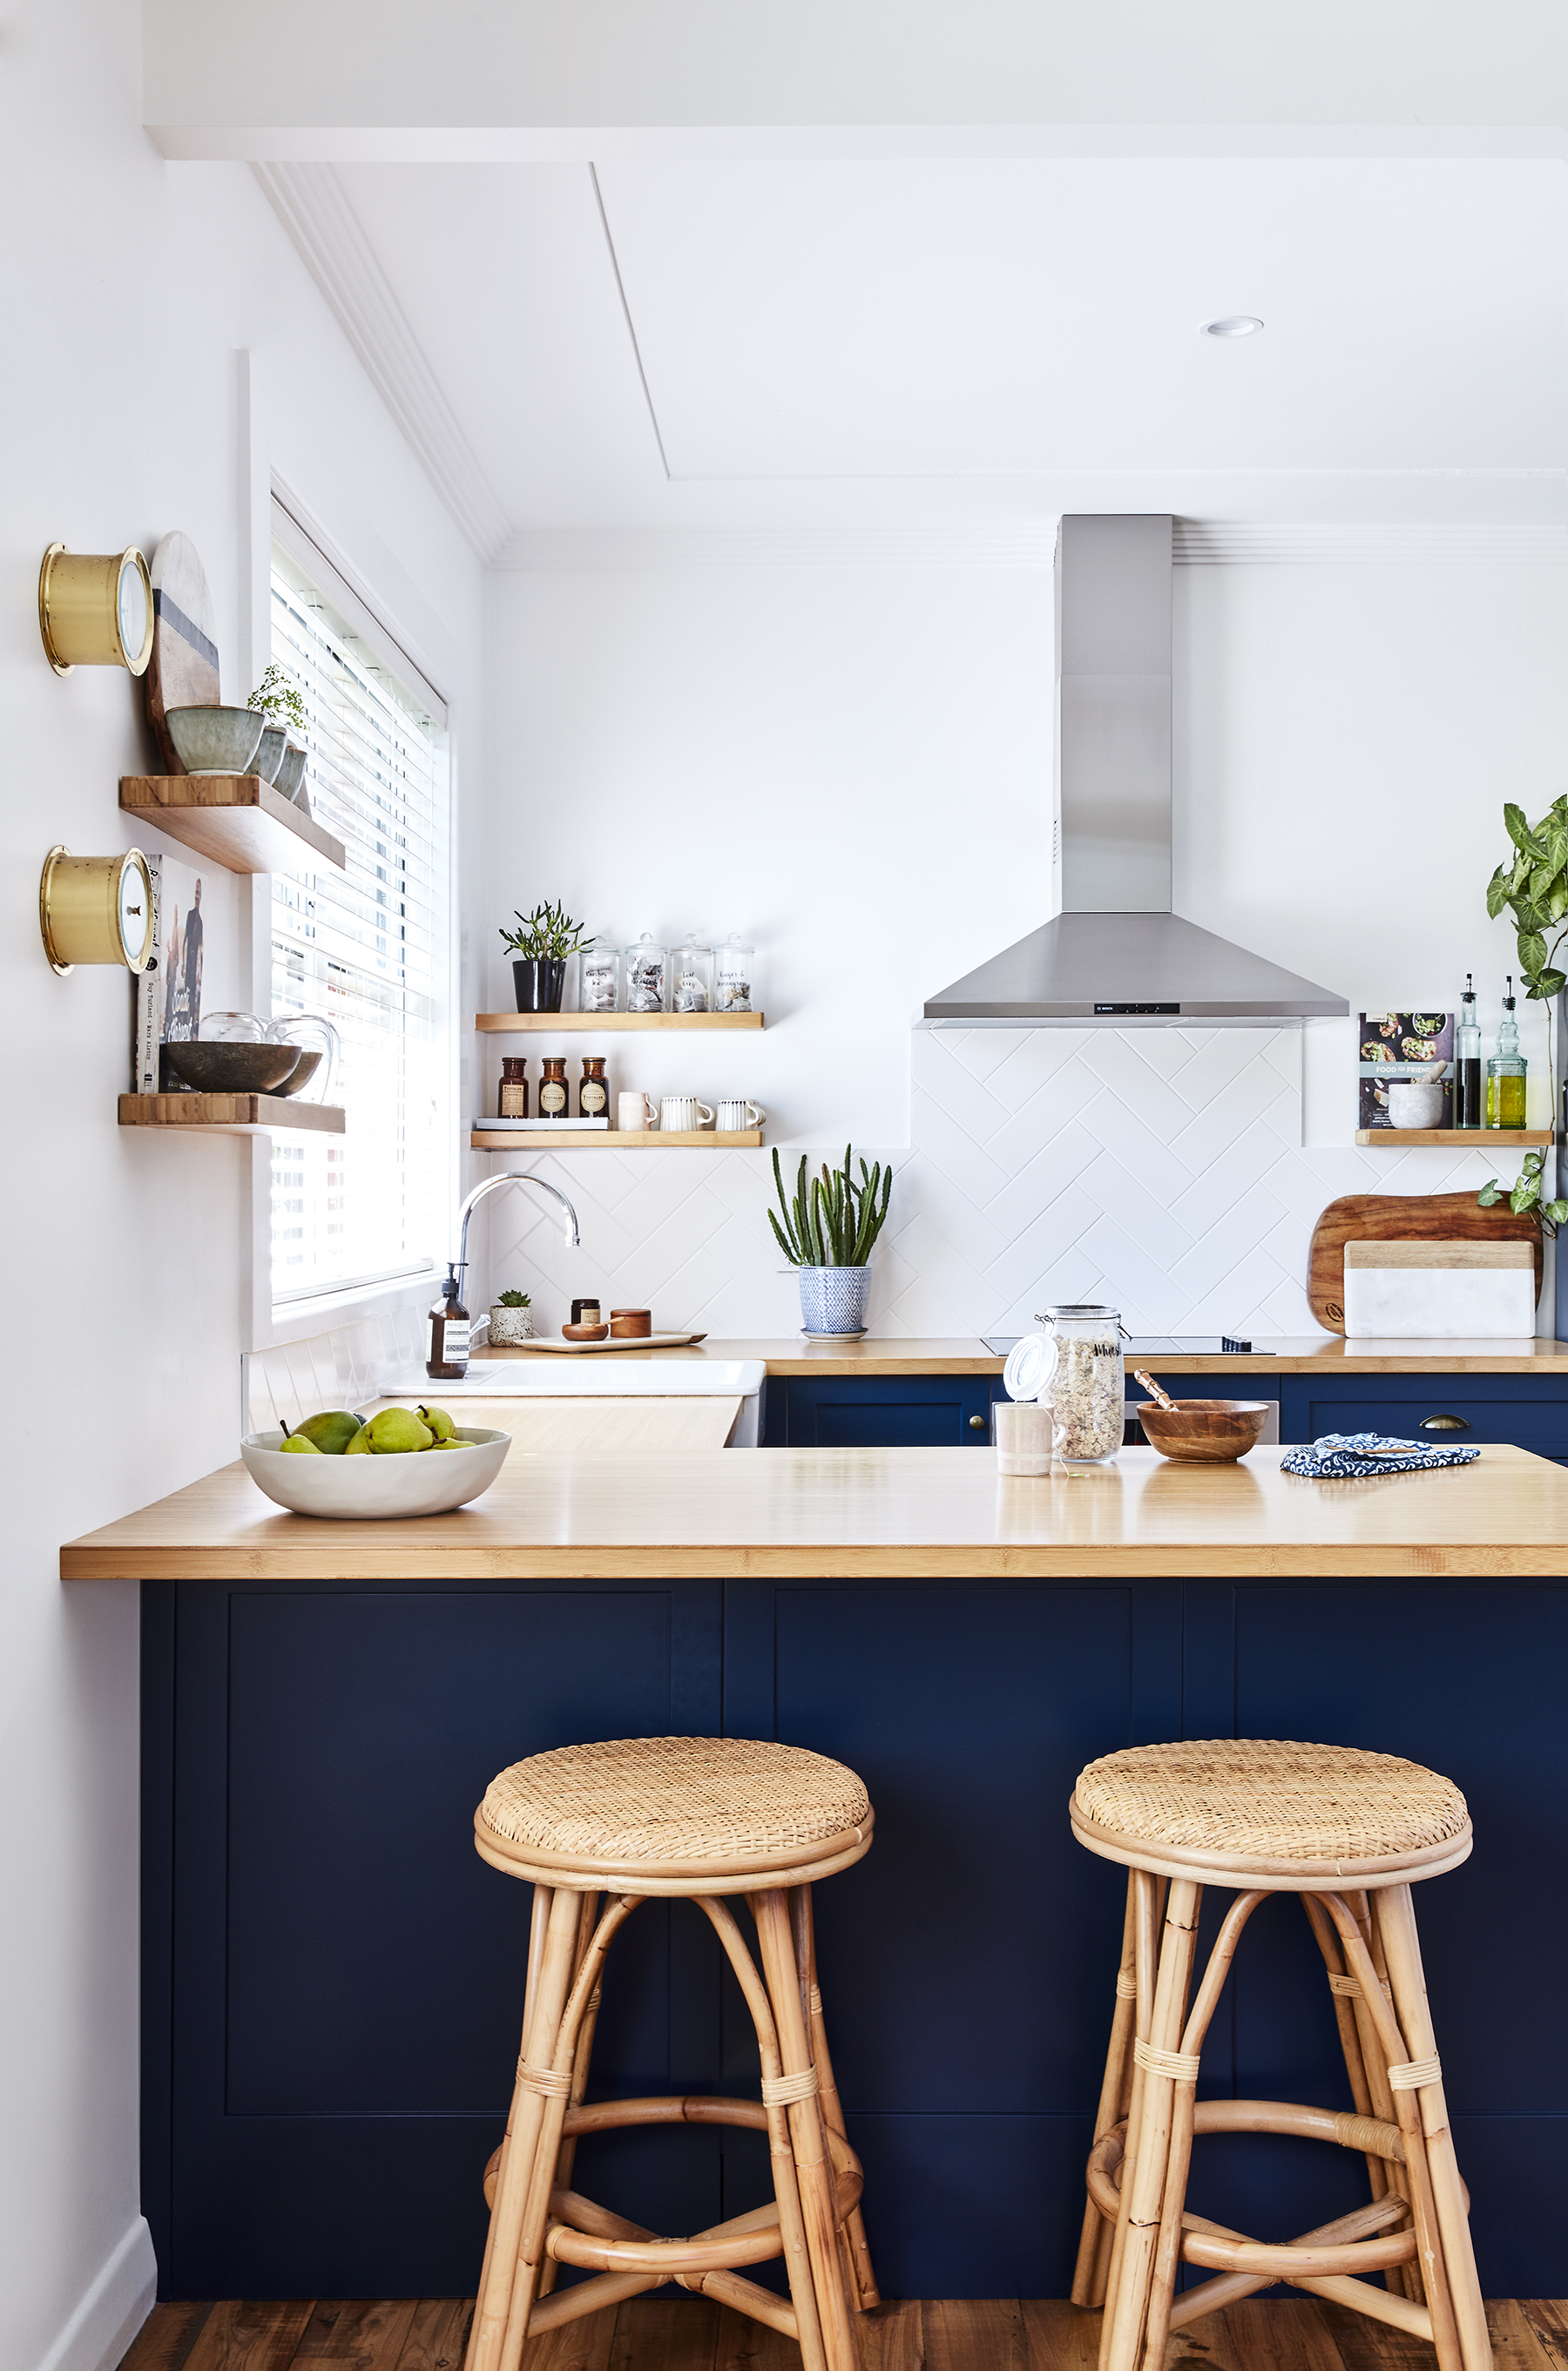 """KITCHEN - """"One of the things we love most about our kitchen and dining, is the natural light. I adore the contrast of our dark cabinets against the wood and white walls,"""" says Maddy. Statement features in this kitchen include bar stools from Naturally Cane and cabinets painted in Taubmans 'Black Granite'."""